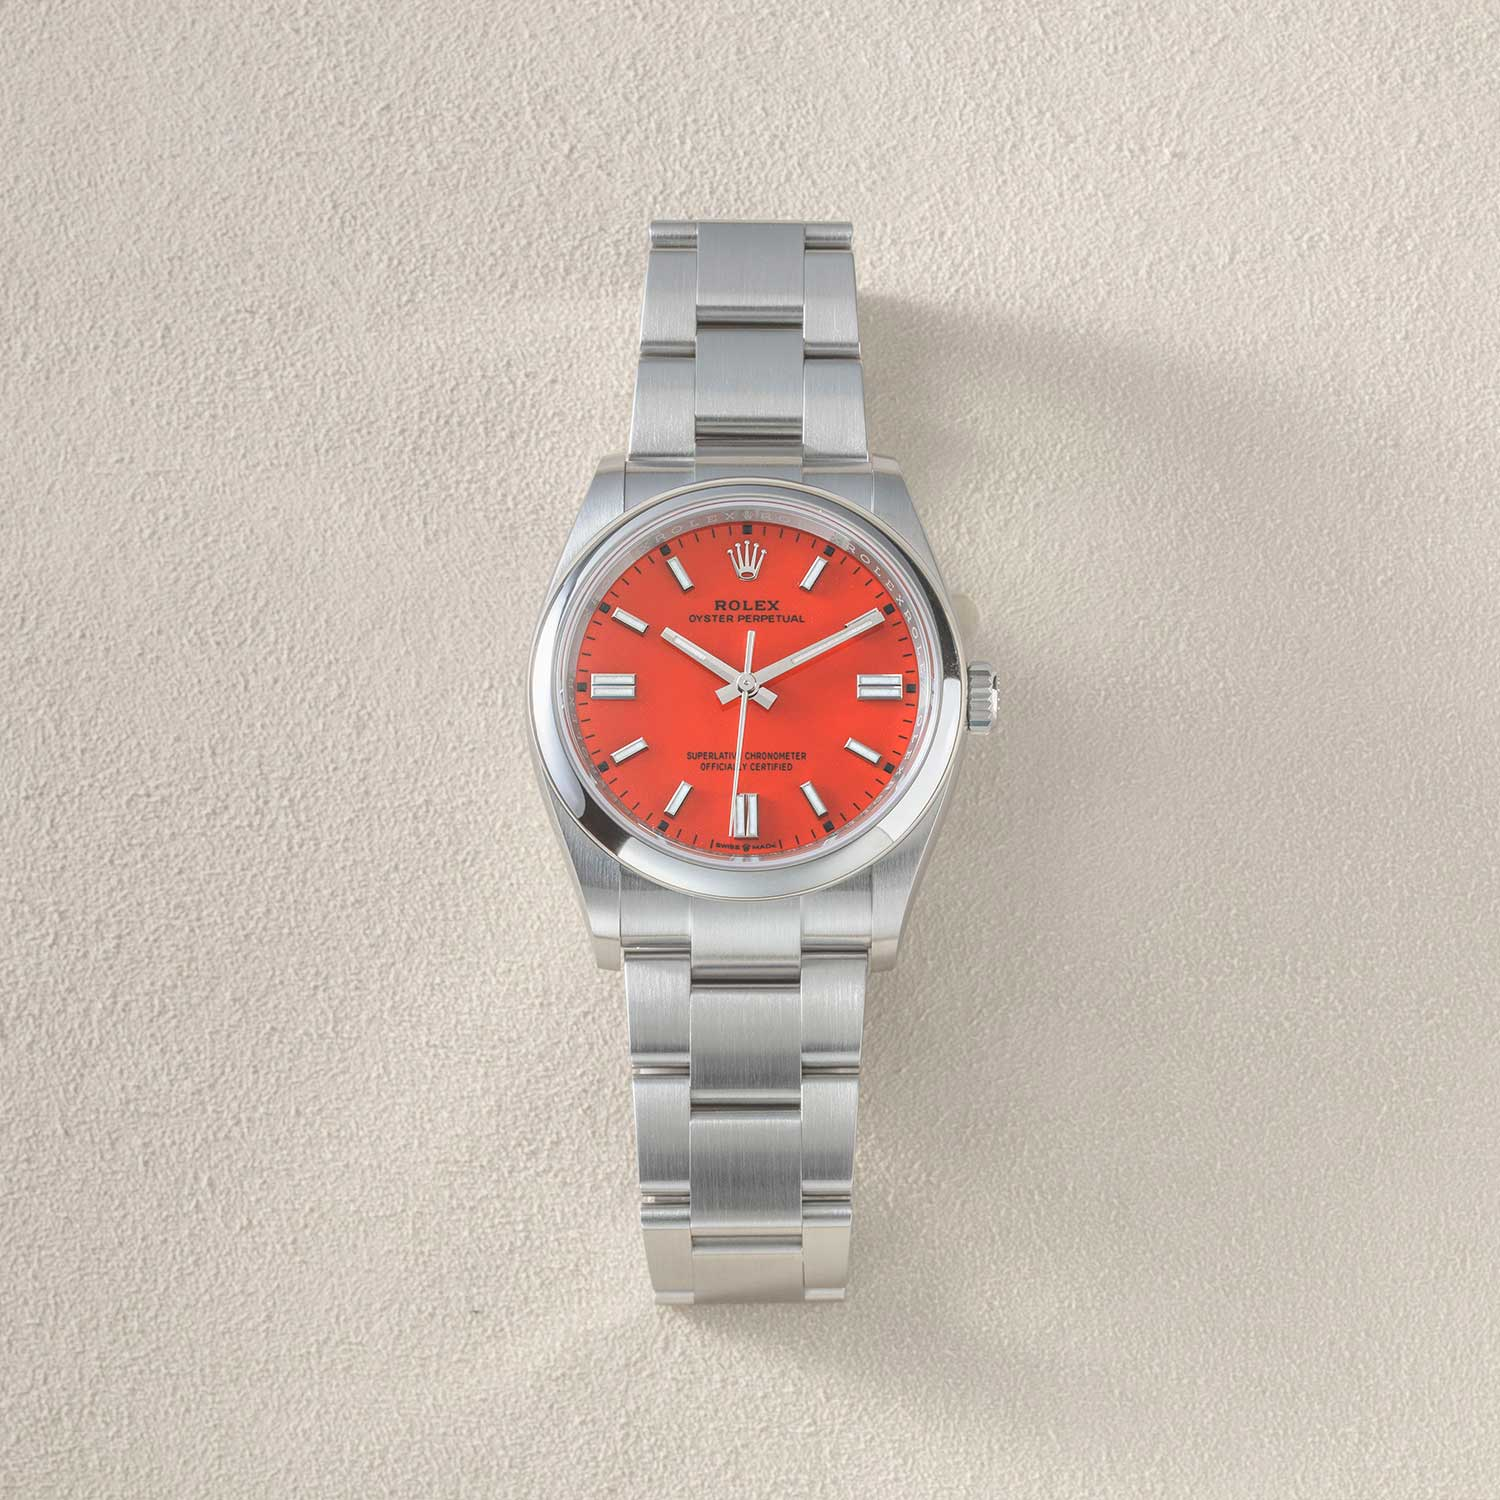 The 36mm 2020 Rolex Oyster Perpetual seen here with the coral red dial (©Revolution)